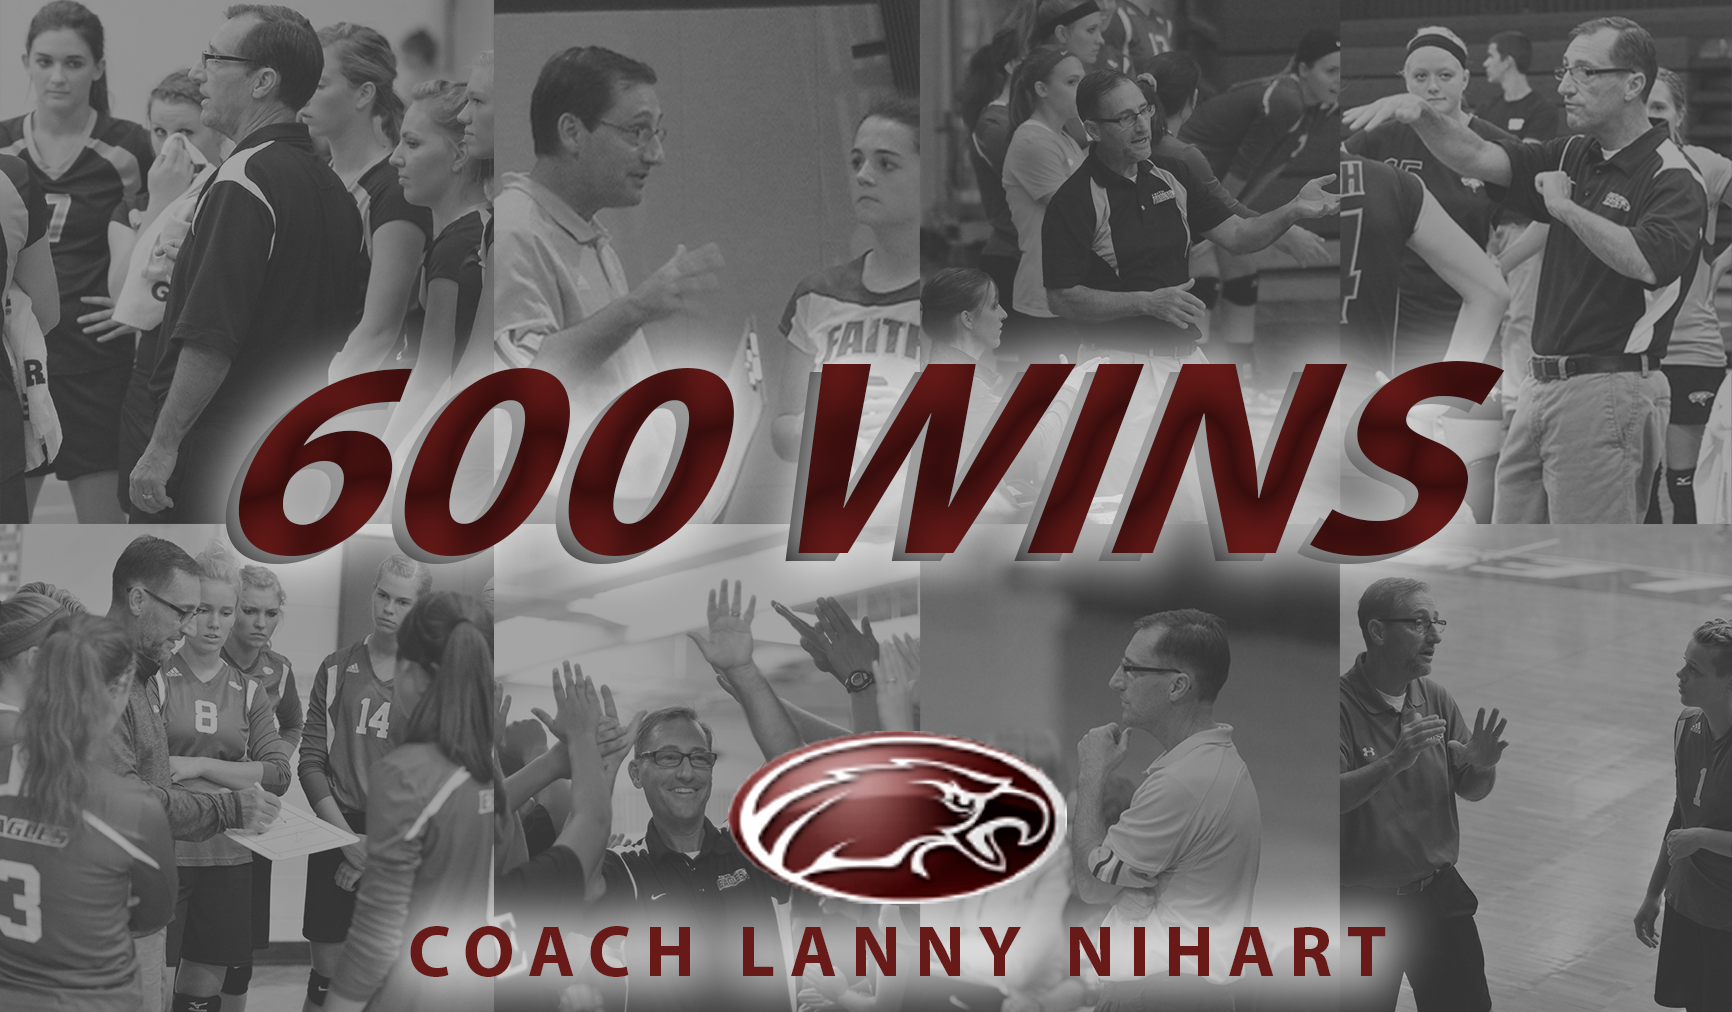 Coach Nihart Earns 600 Wins